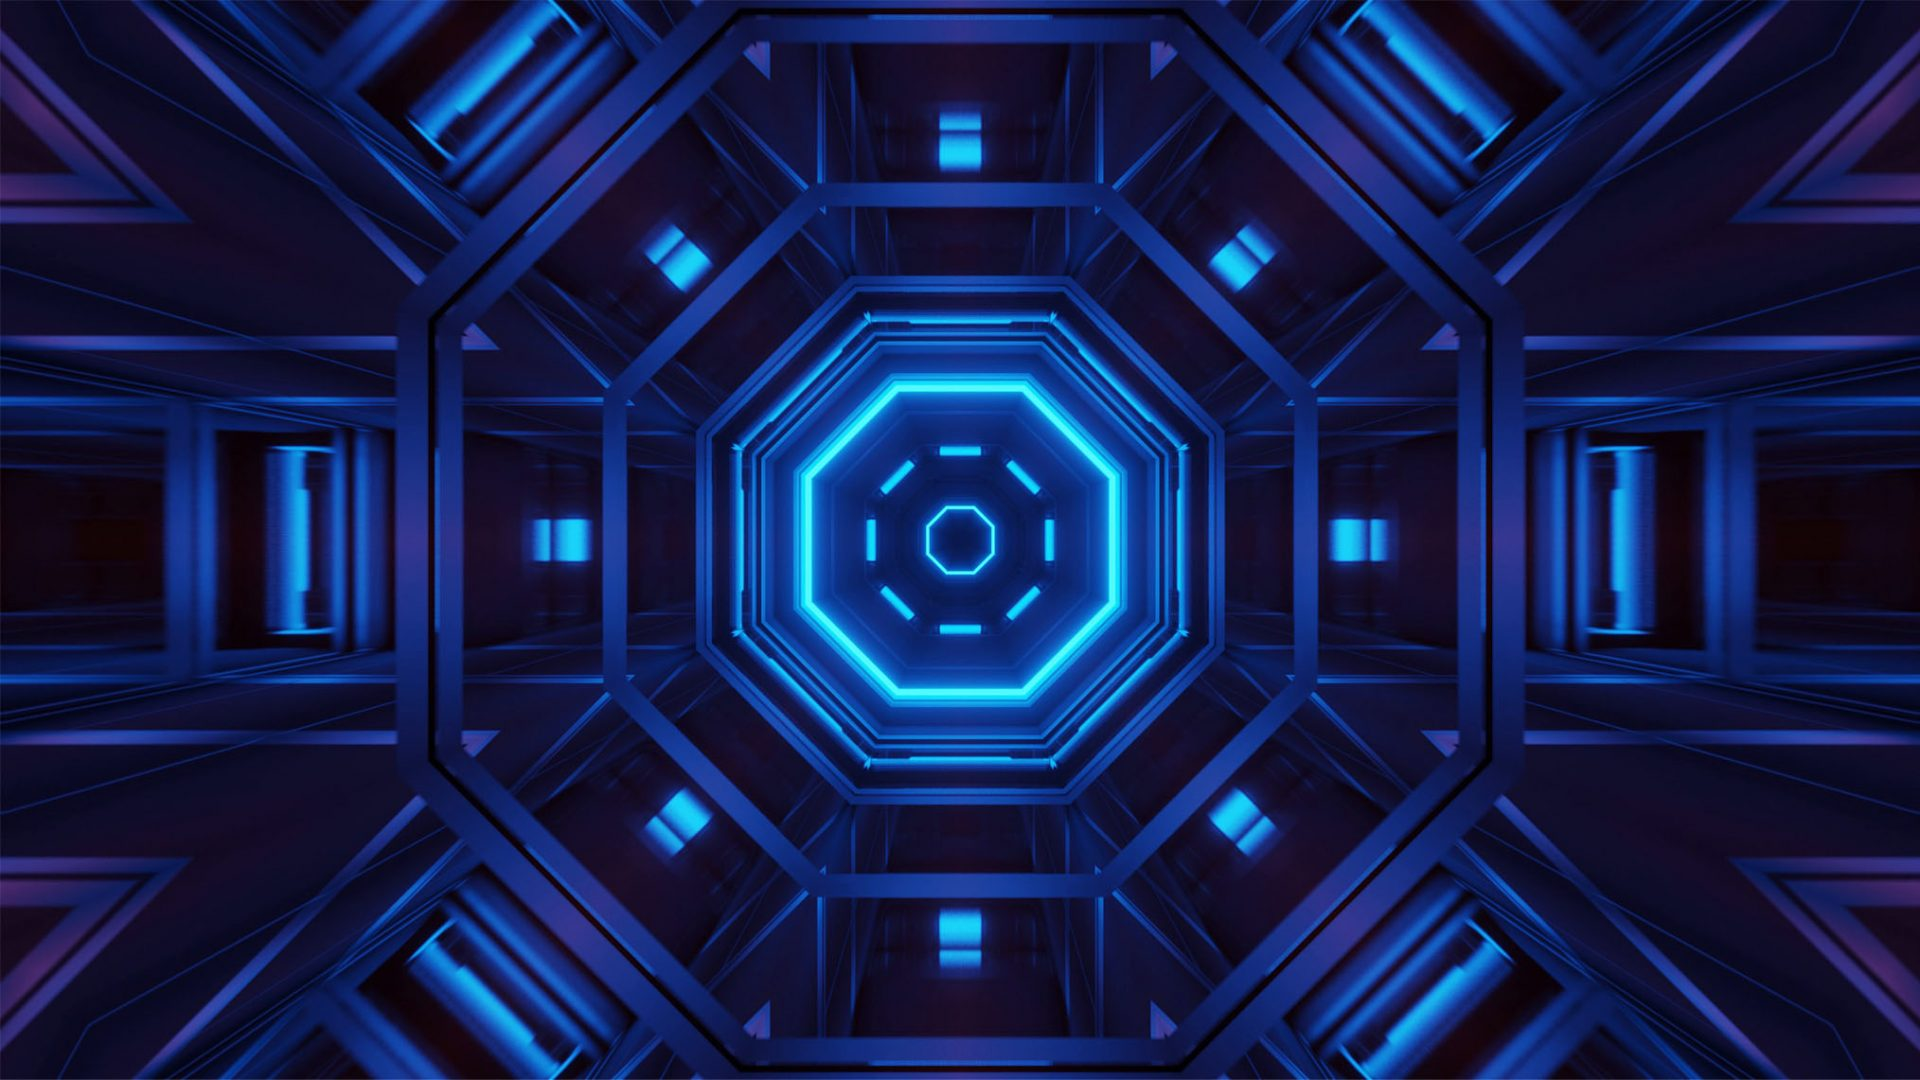 Rendering abstract futuristic background with glowing neon blue lights